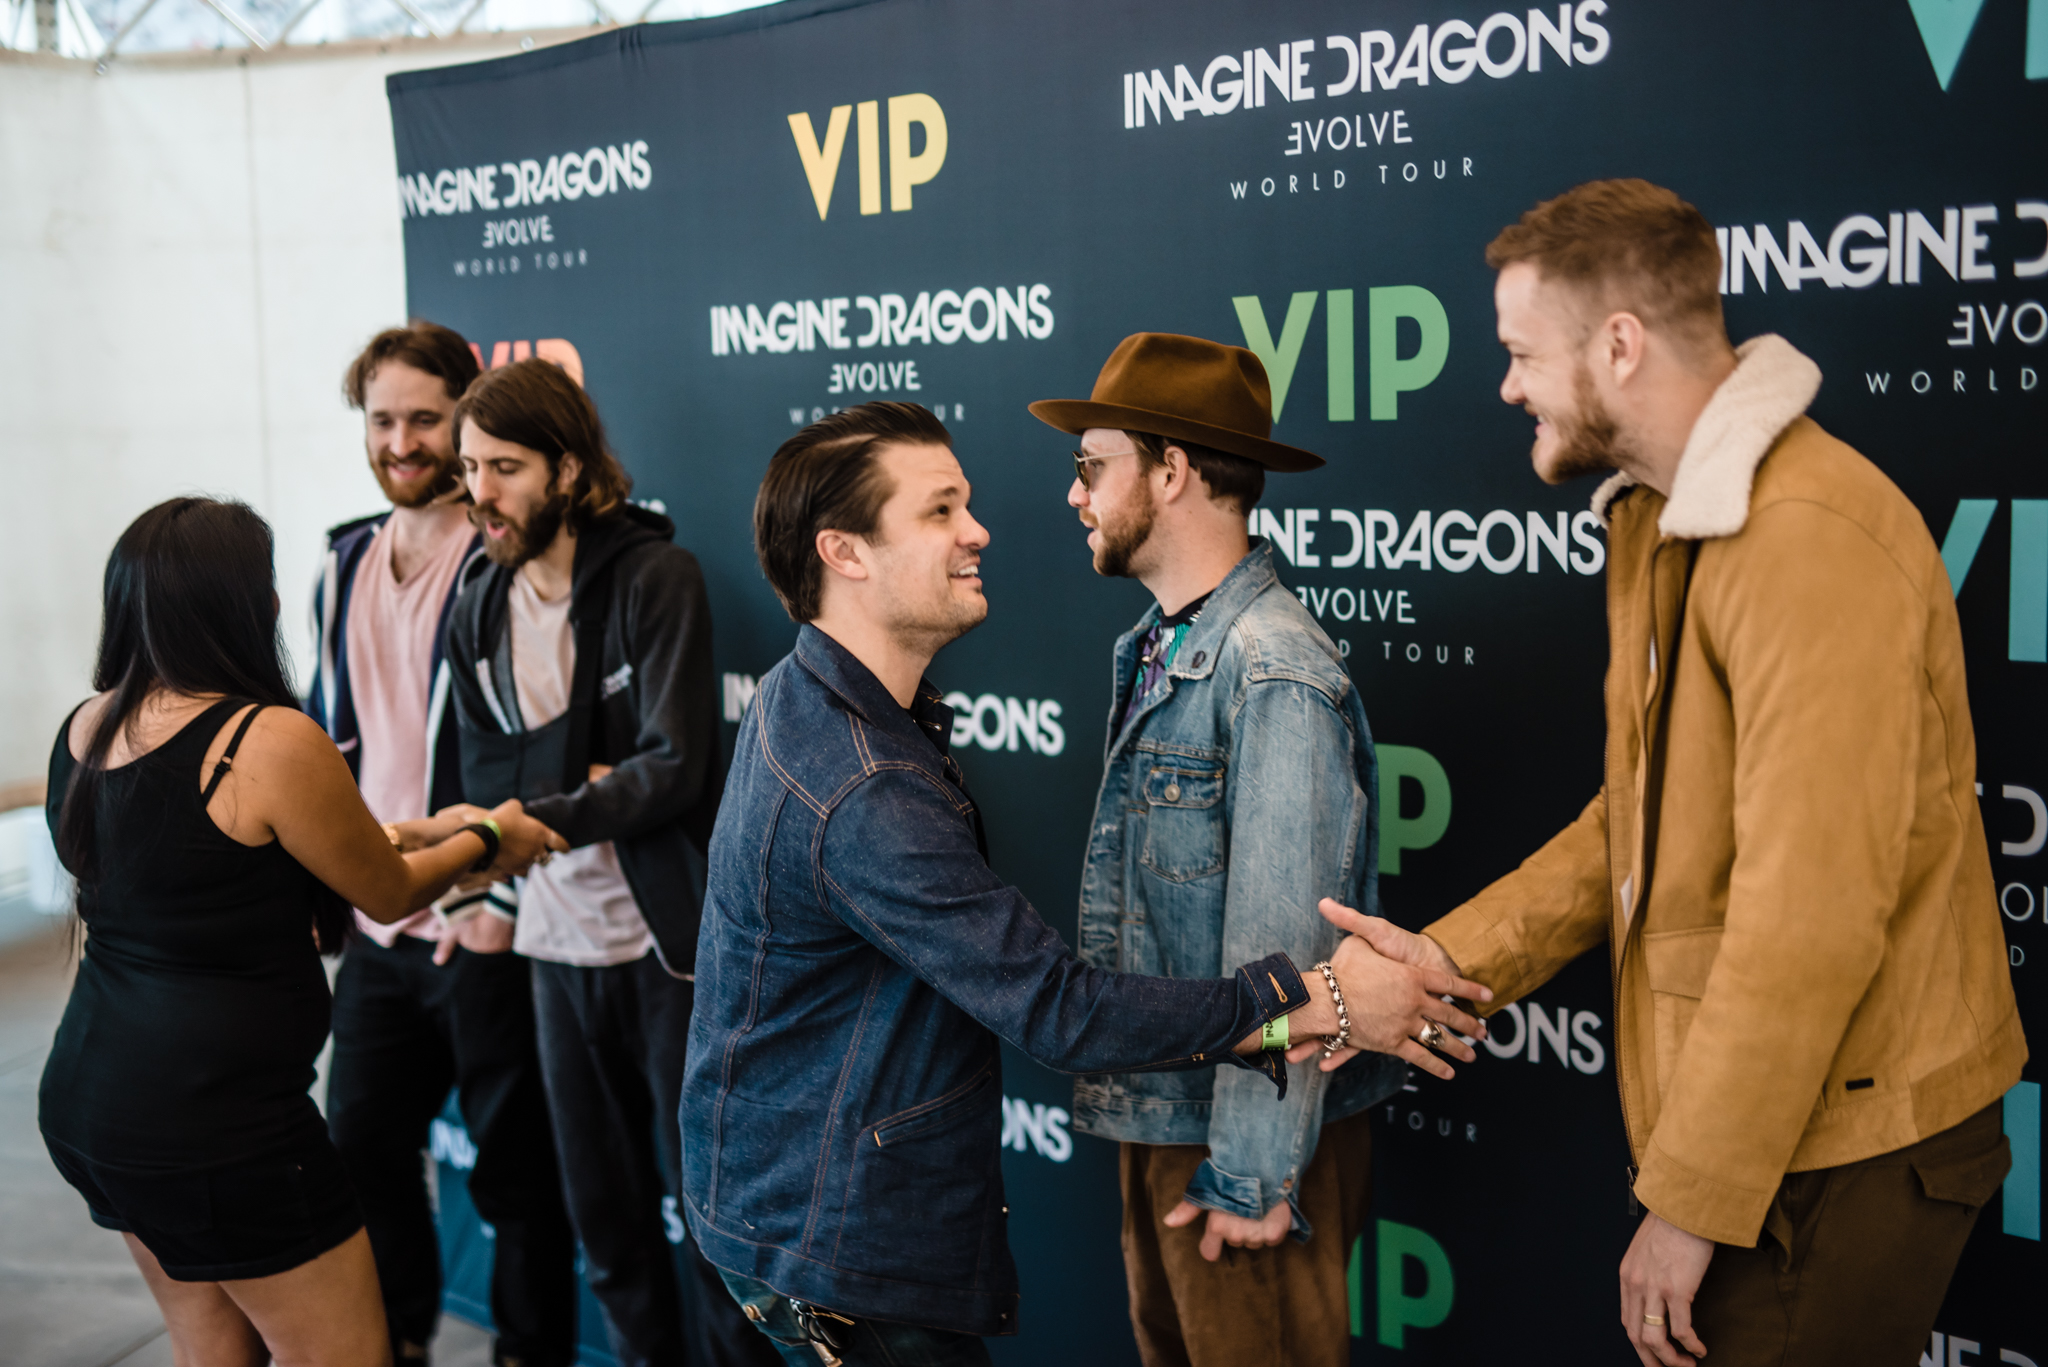 Imagine dragons vip tickets evolve world tour 2018 one 1 premium reserved seat in the first 5 rows or one 1 general admission pit ticket with early entry to see imagine dragons live meet greet kristyandbryce Gallery